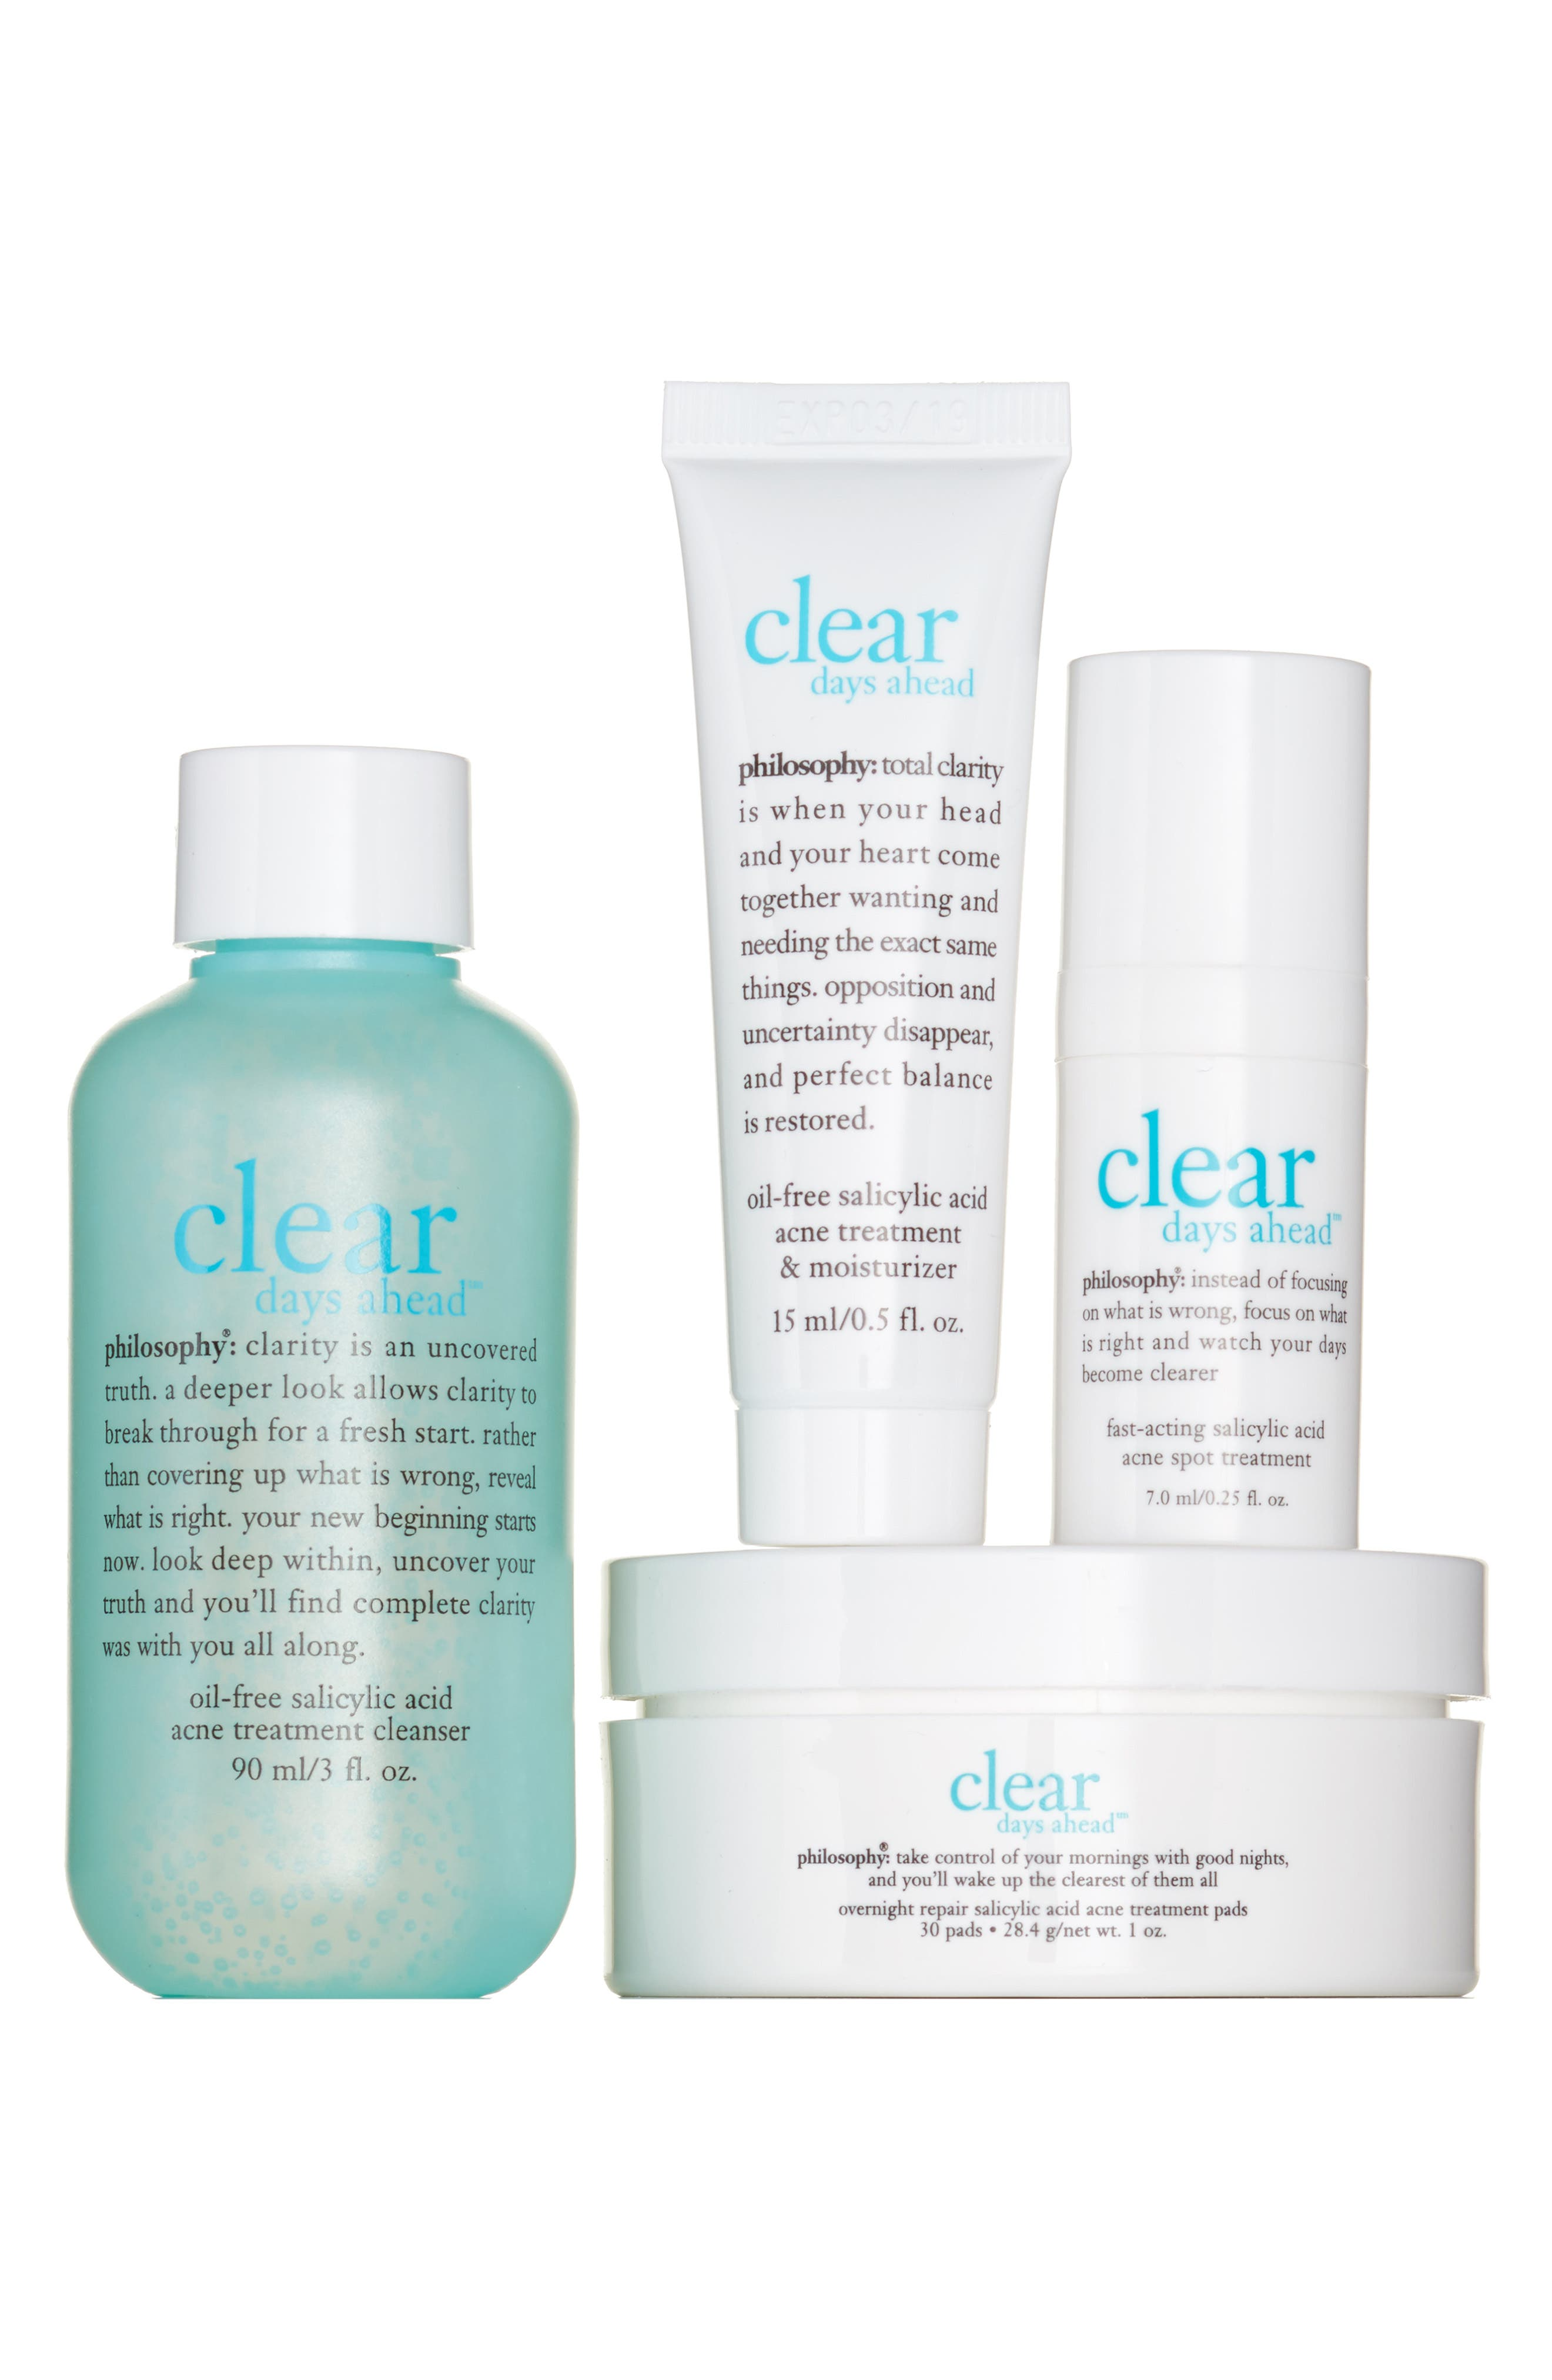 philosophy clear days ahead trial set ($49 Value)